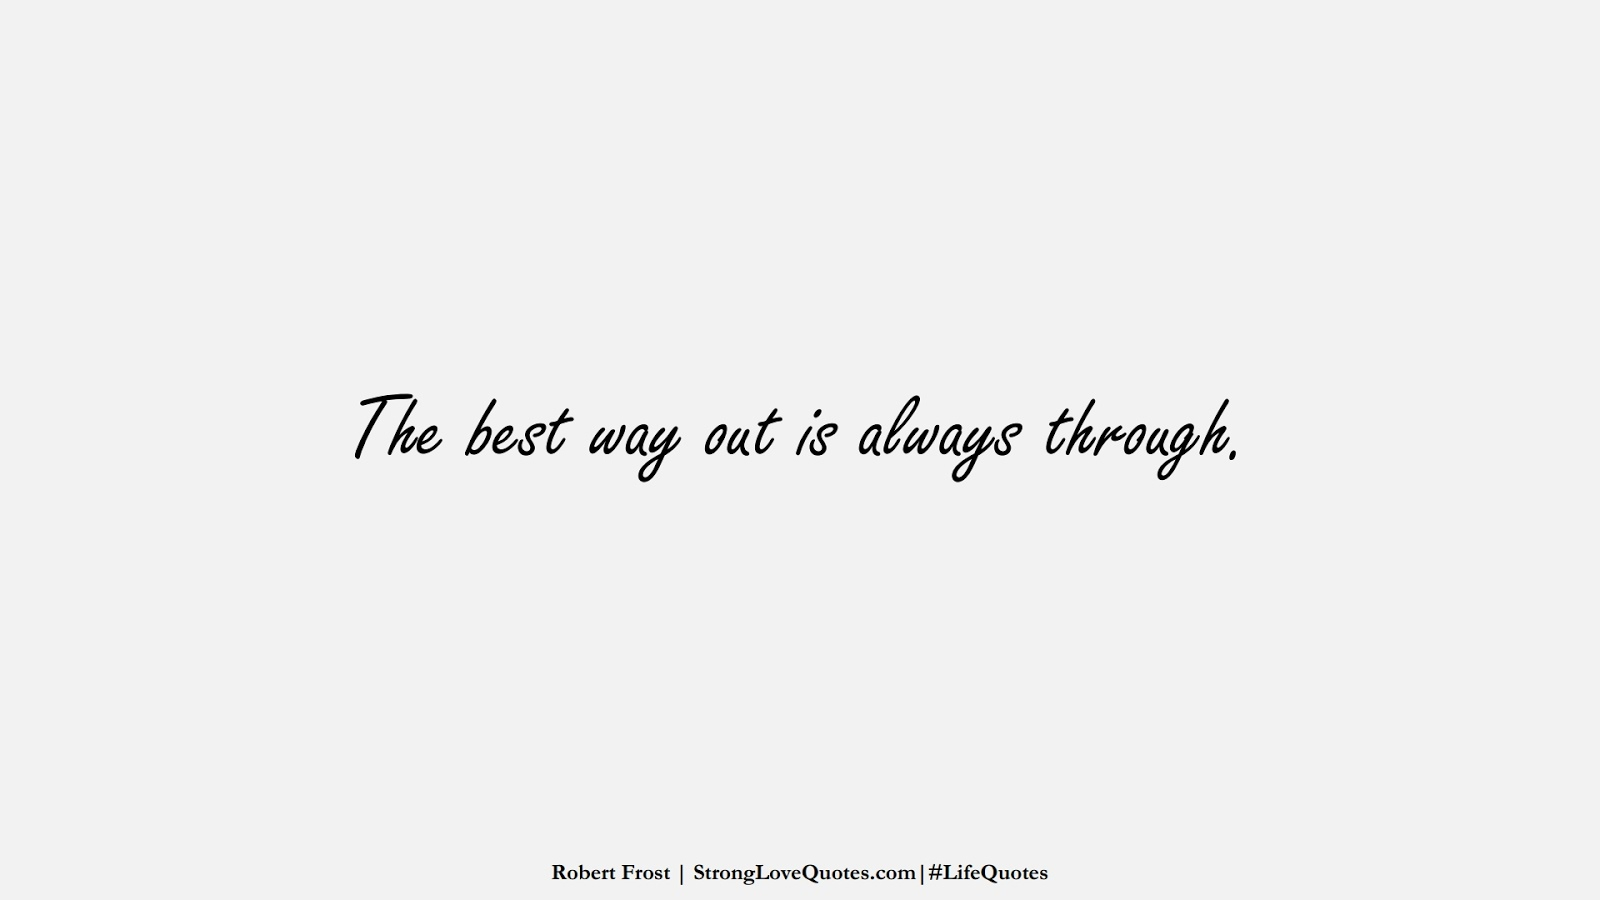 The best way out is always through. (Robert Frost);  #LifeQuotes